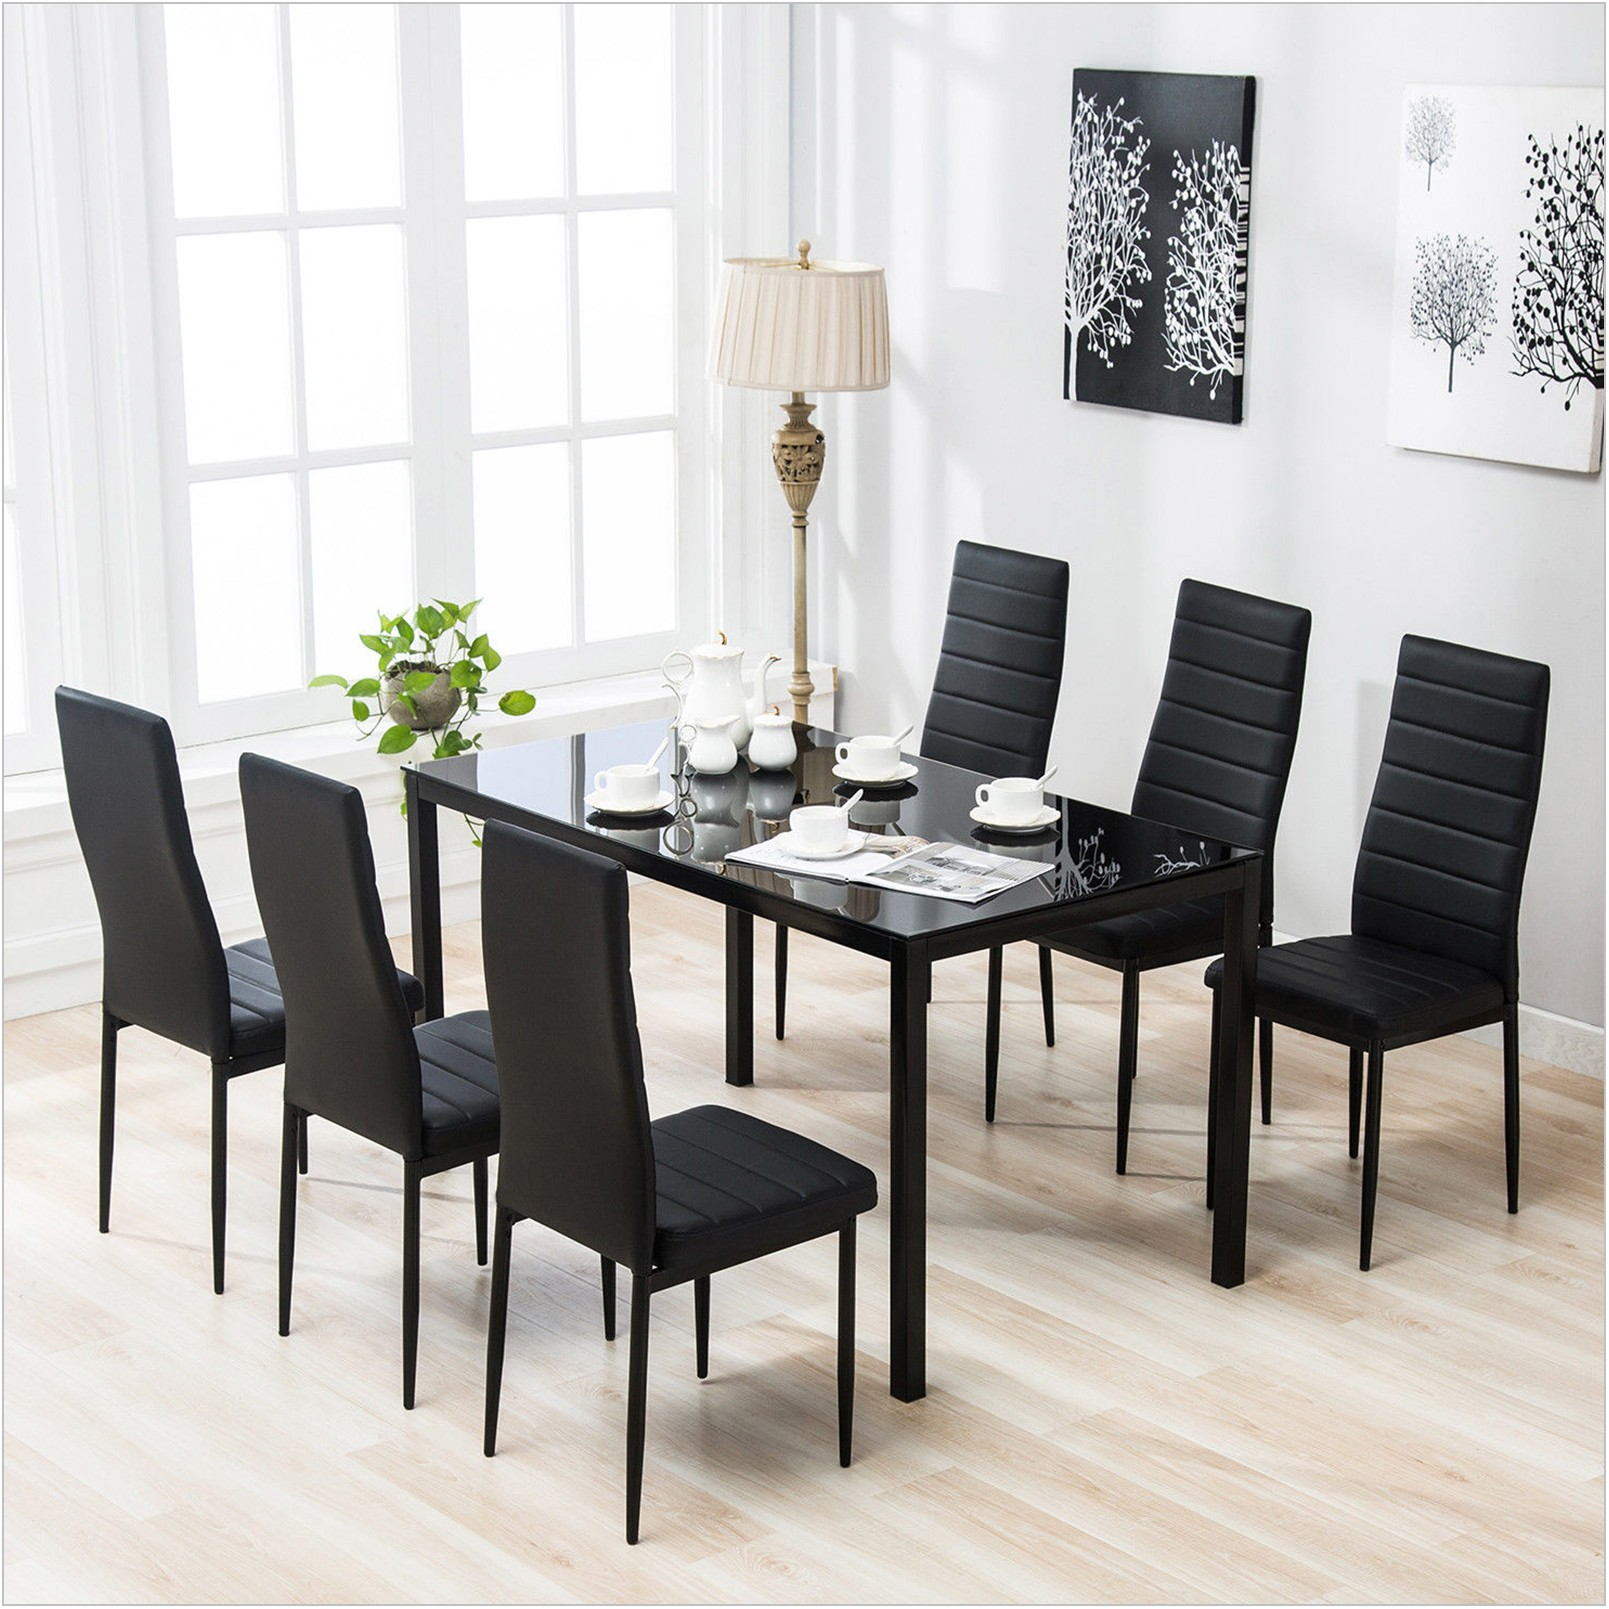 Dining Room Table 7 Piece